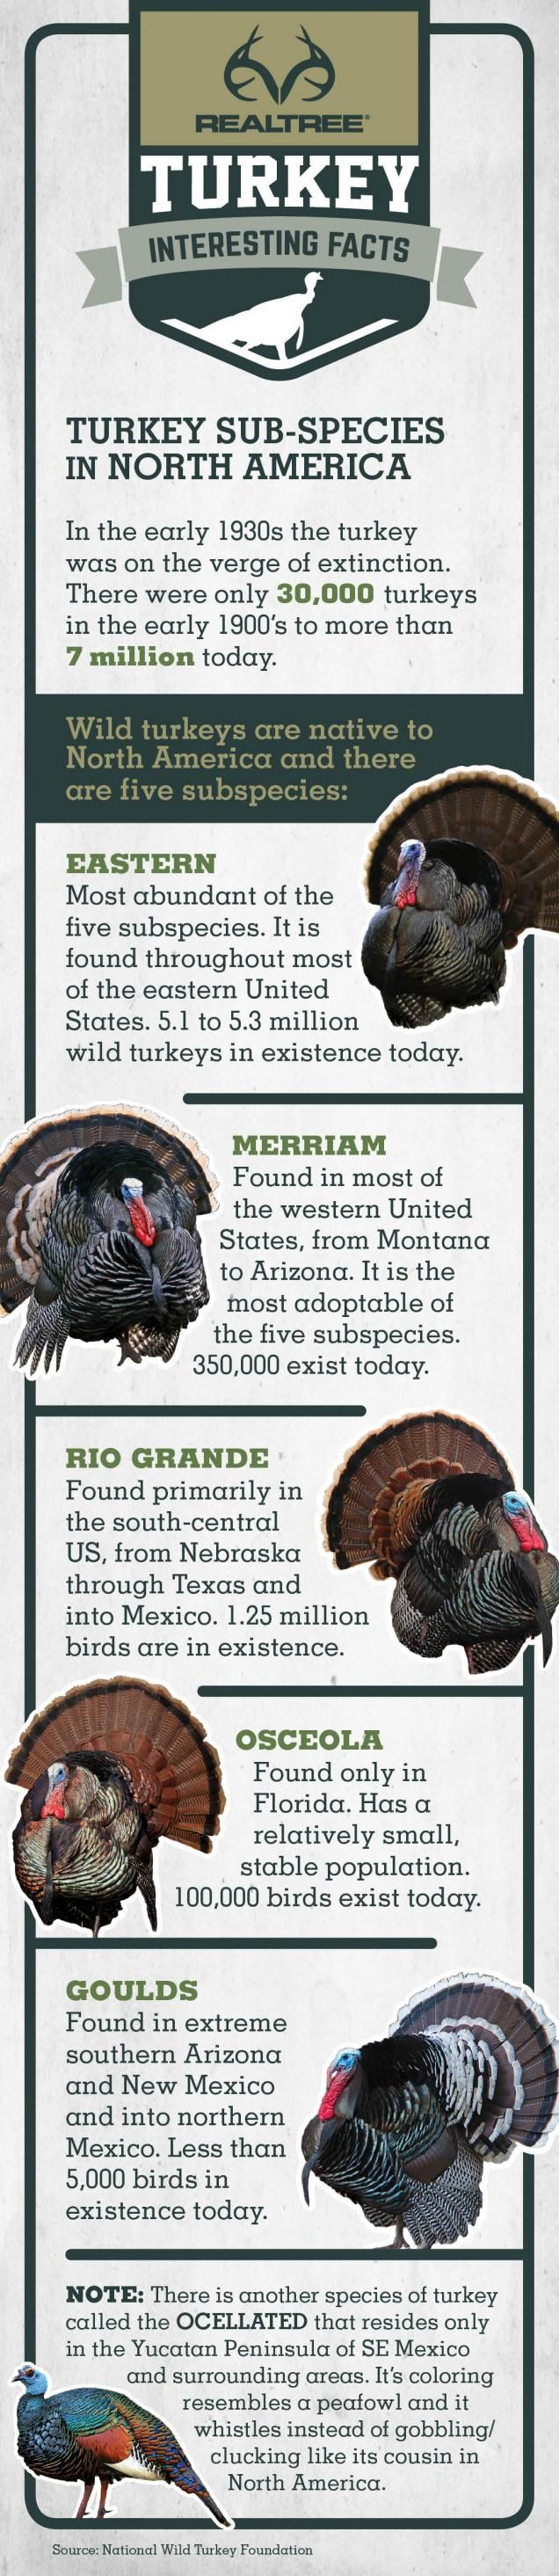 Turkey Facts: Turkey Sub-Species in North America  #Realtreeinfographics